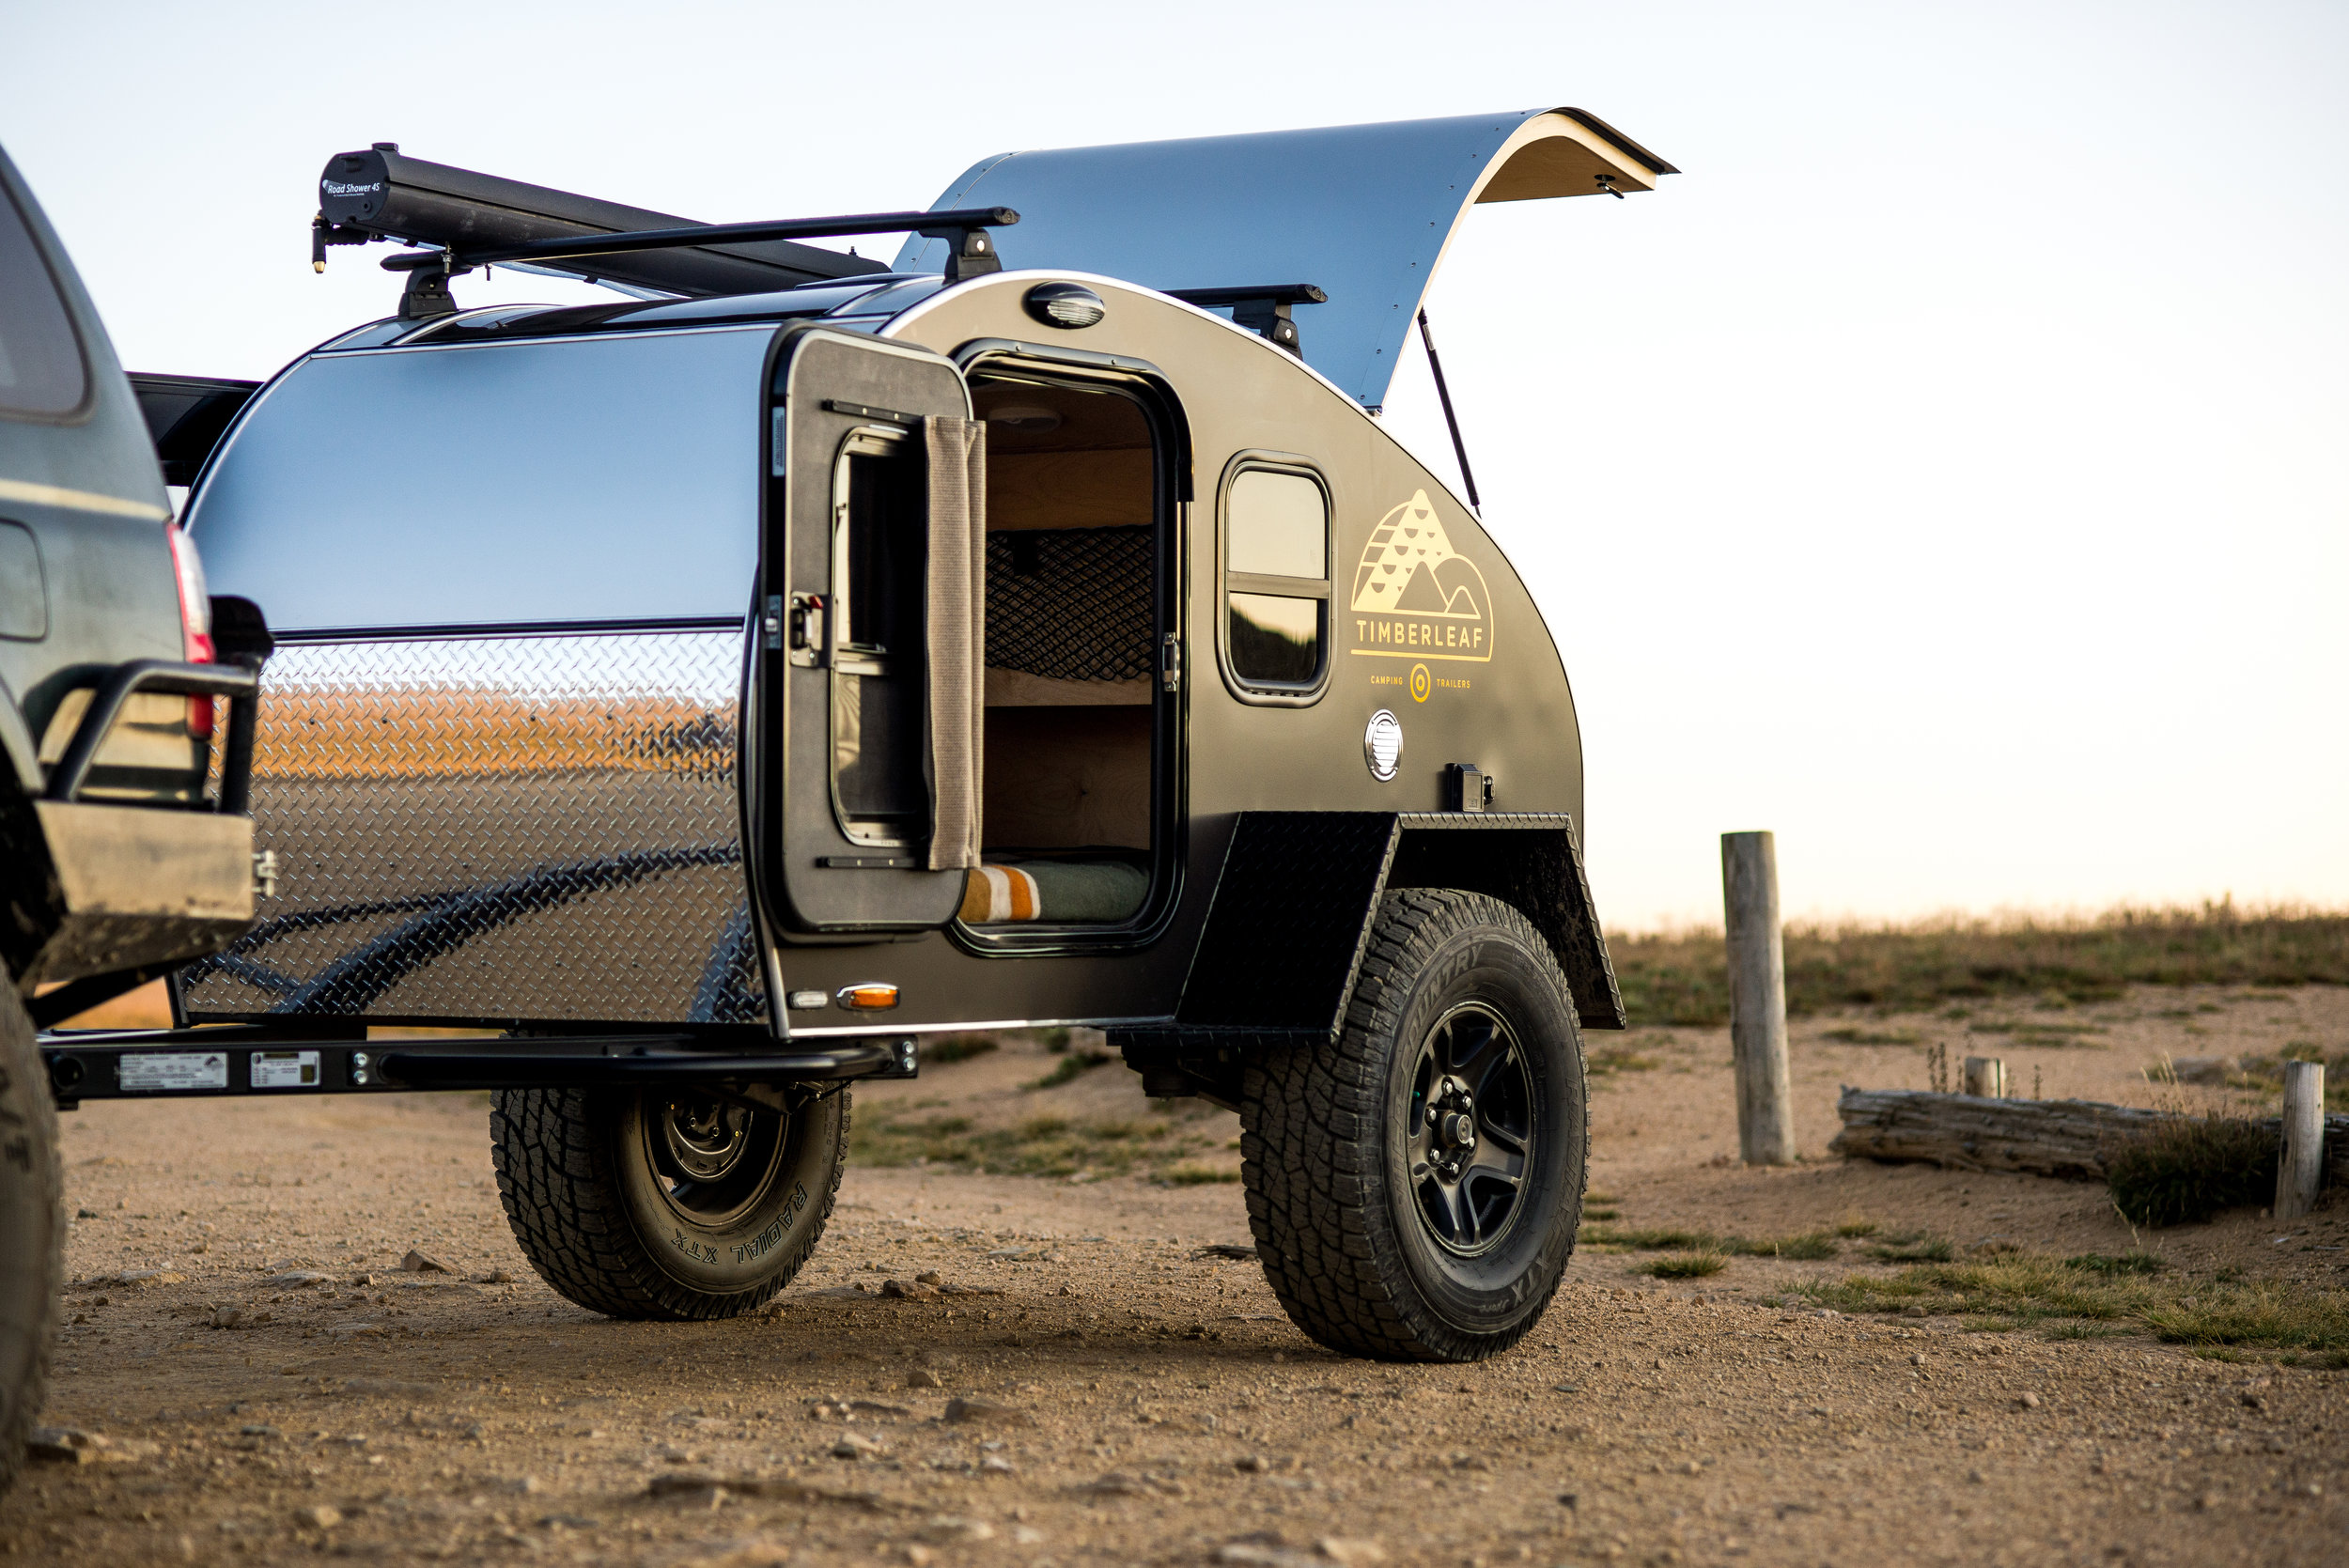 Pika Teardrop shown with optional Offroad Package upgrade.